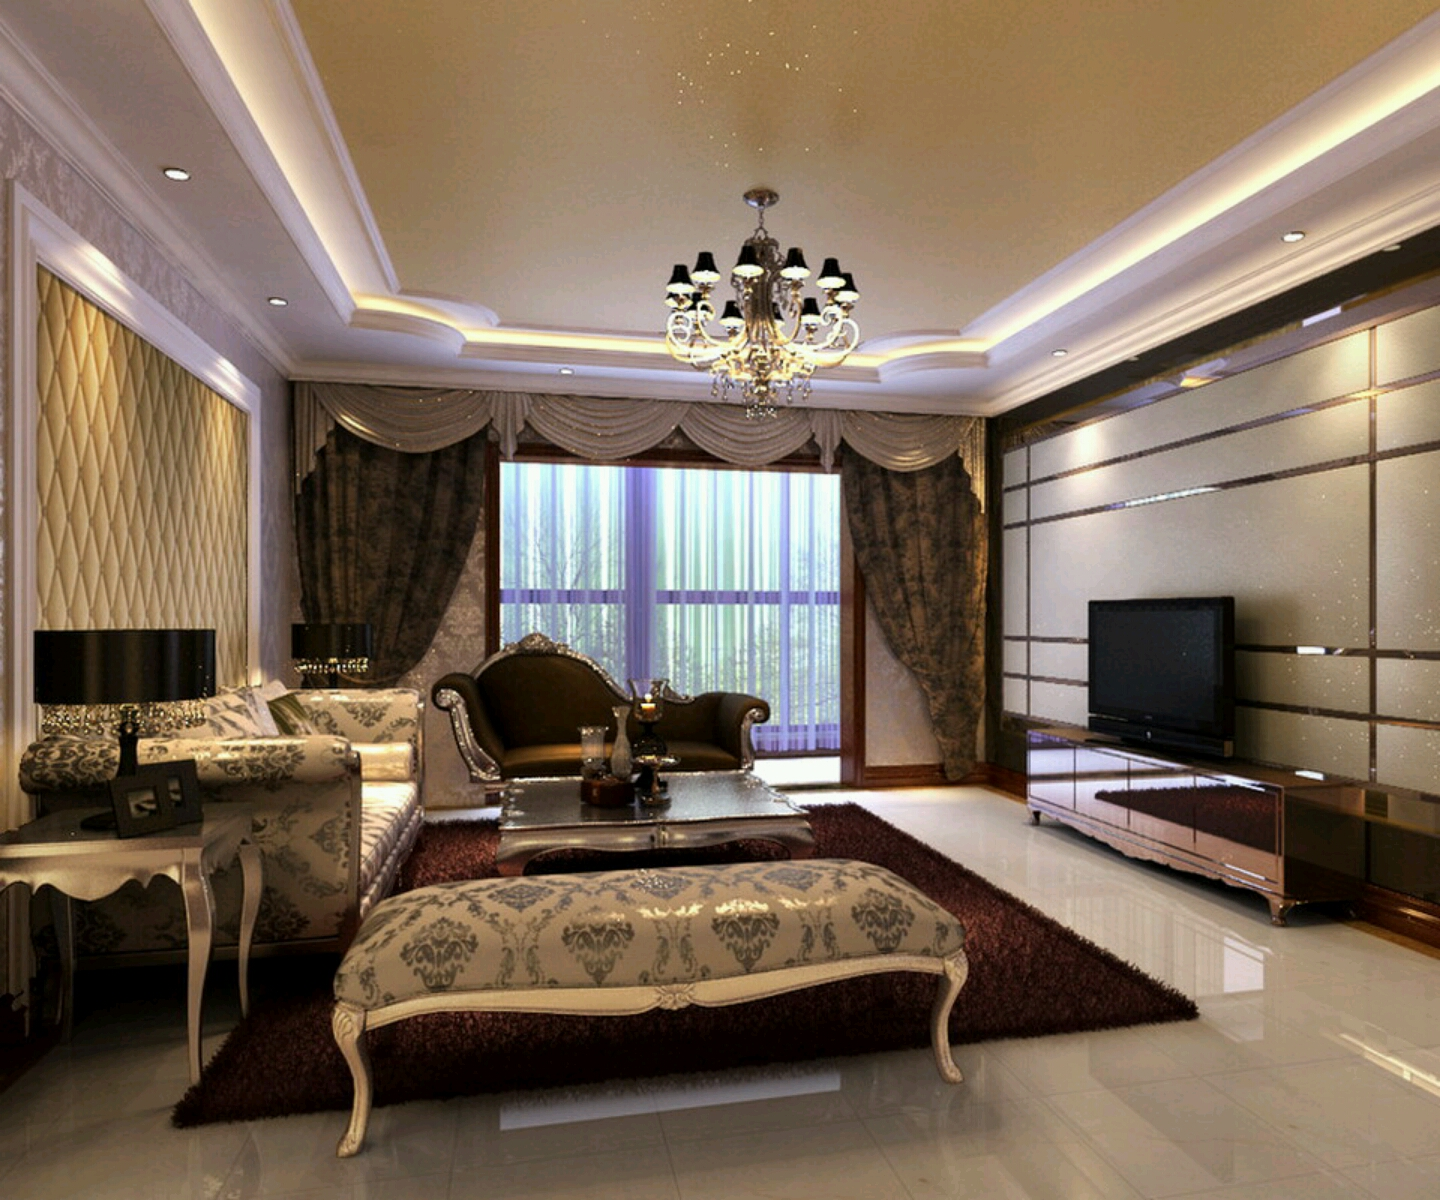 New home designs latest luxury homes interior decoration for Complete interior design of a house